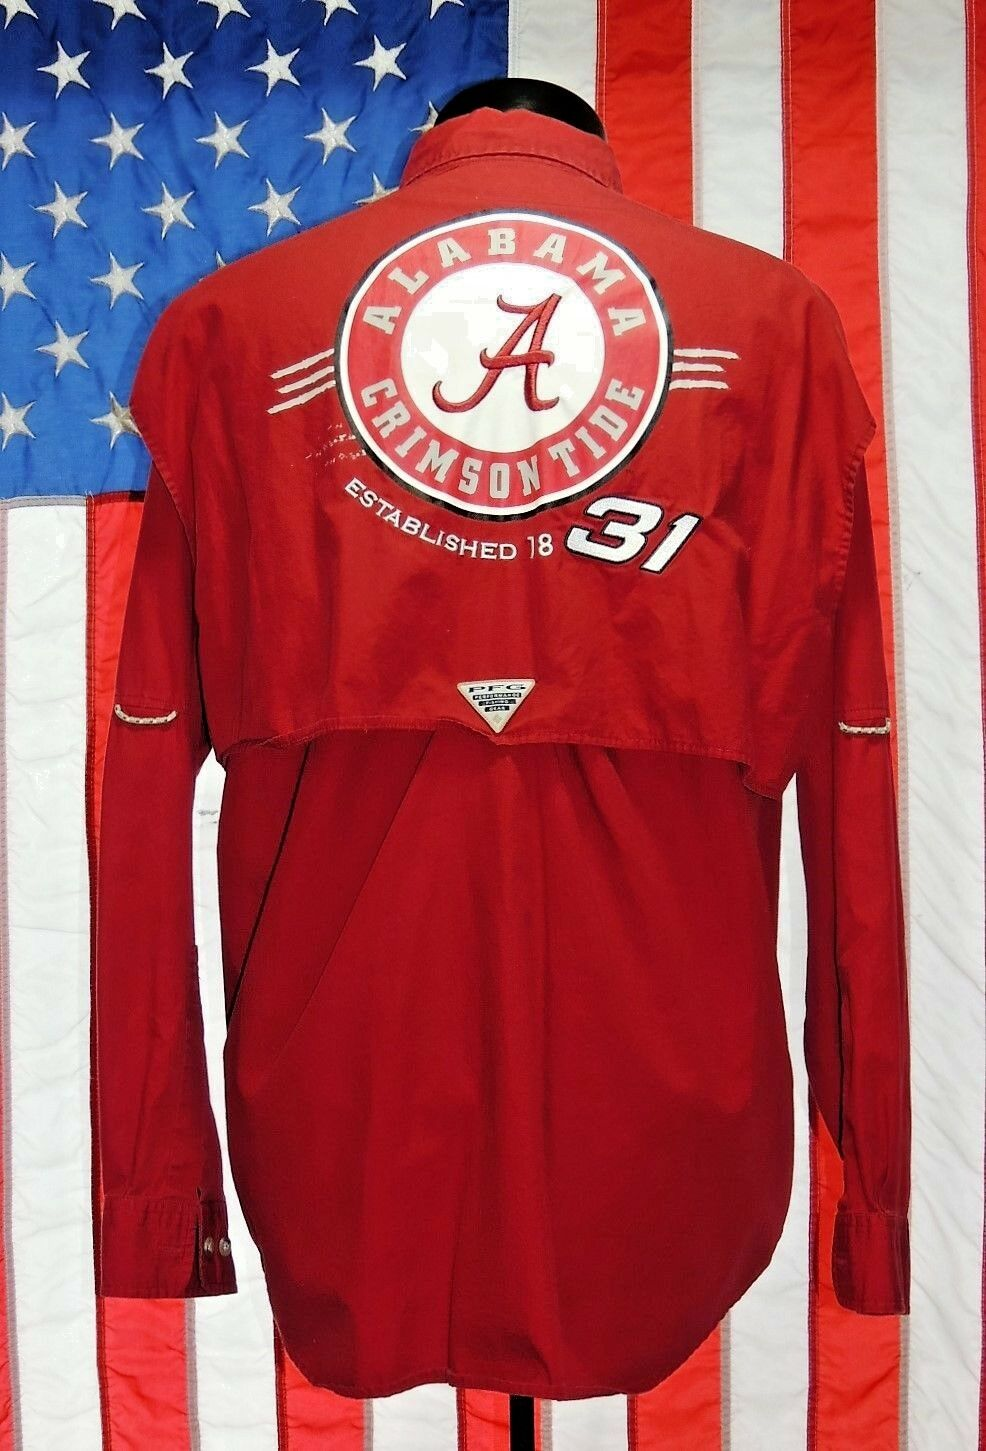 Men Med Columbia PFG Alabama Crimson Roll Tide Fishing Nascar Shirt 31 Newman